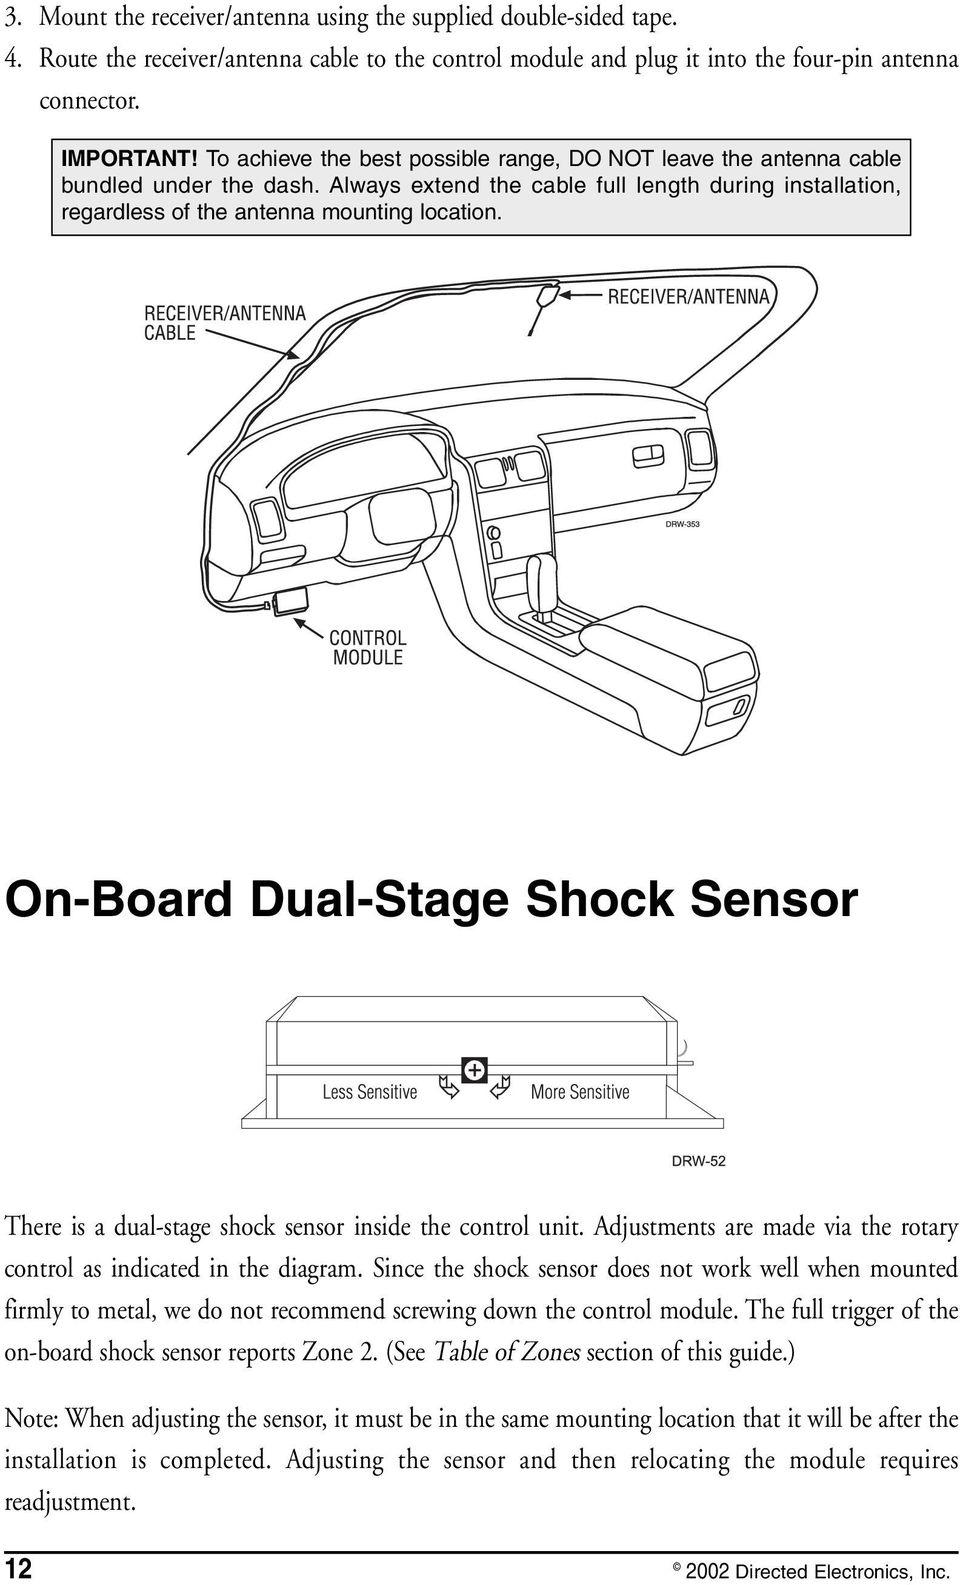 On-Board Dual-Stage Shock Sensor There is a dual-stage shock sensor inside the control unit. Adjustments are made via the rotary control as indicated in the diagram.